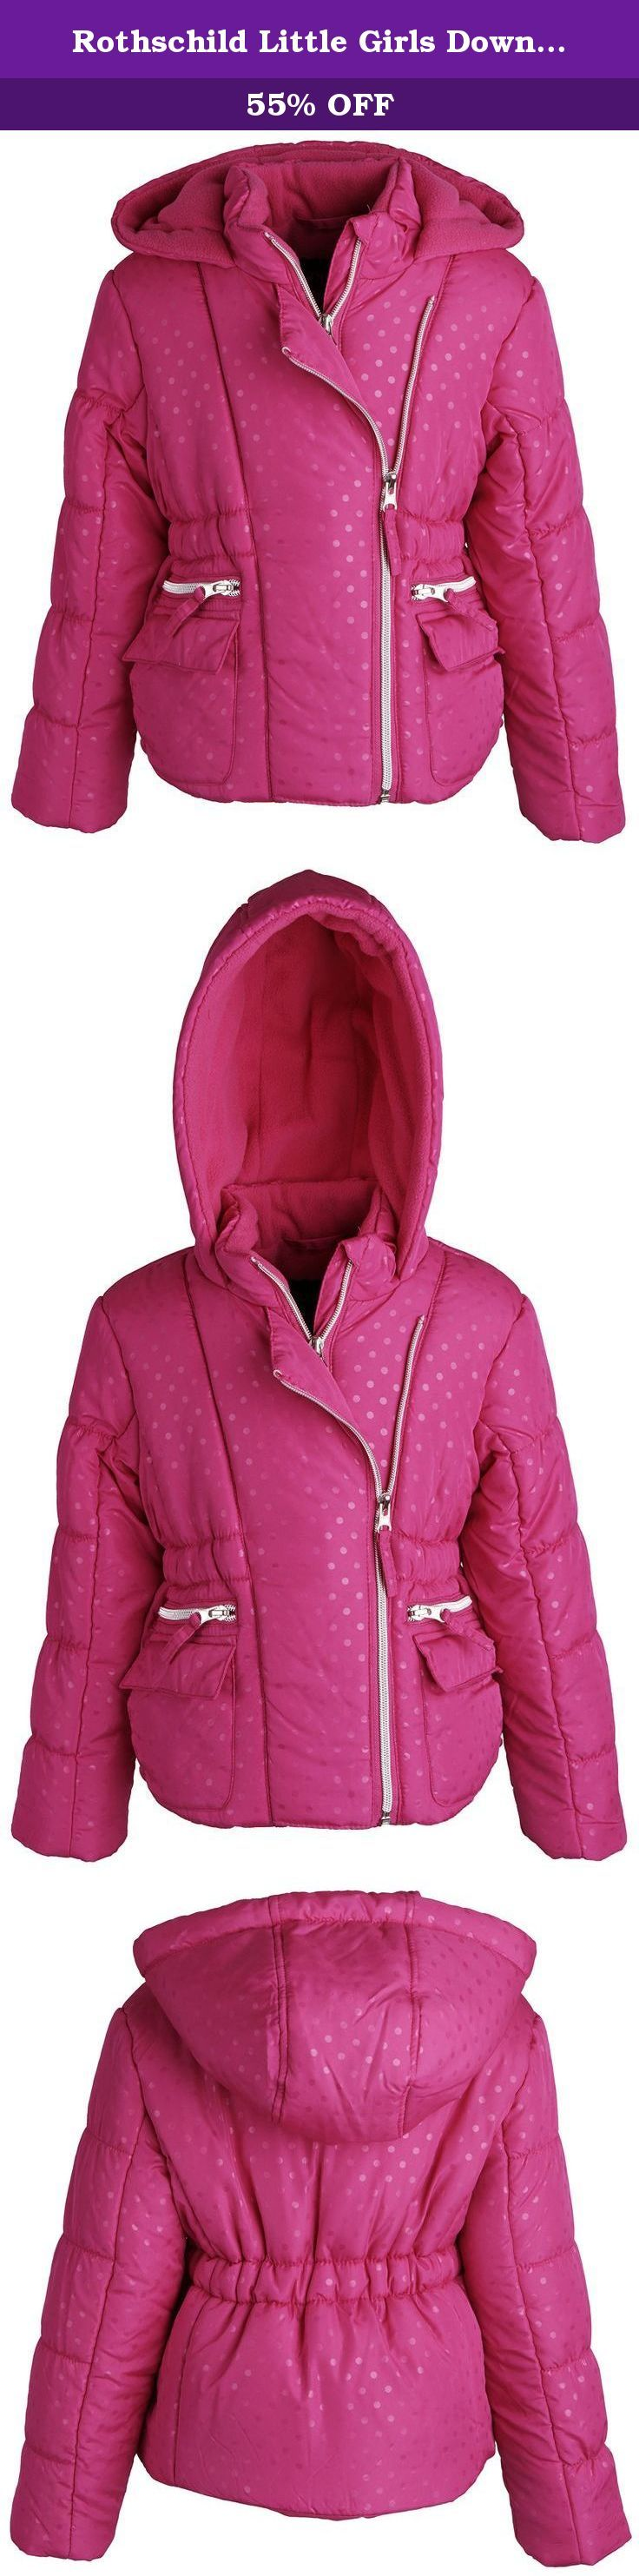 Rothschild Little Girls Down Alternative Fleece Winter Puffer Bubble Jacket Coat - Rubylight (size 5/6). Bundle up your little angel in this lovely bubble jacket by Rothschild. Ultra soft full fleece lining along with its thick down alternative filling will definitely help her cope those extreme weathers. All over polka dot print and elasticized waist will surely please moms and daughters taste alike. Available in colors rubylight and sapphire and in sizes 2T to 6X.